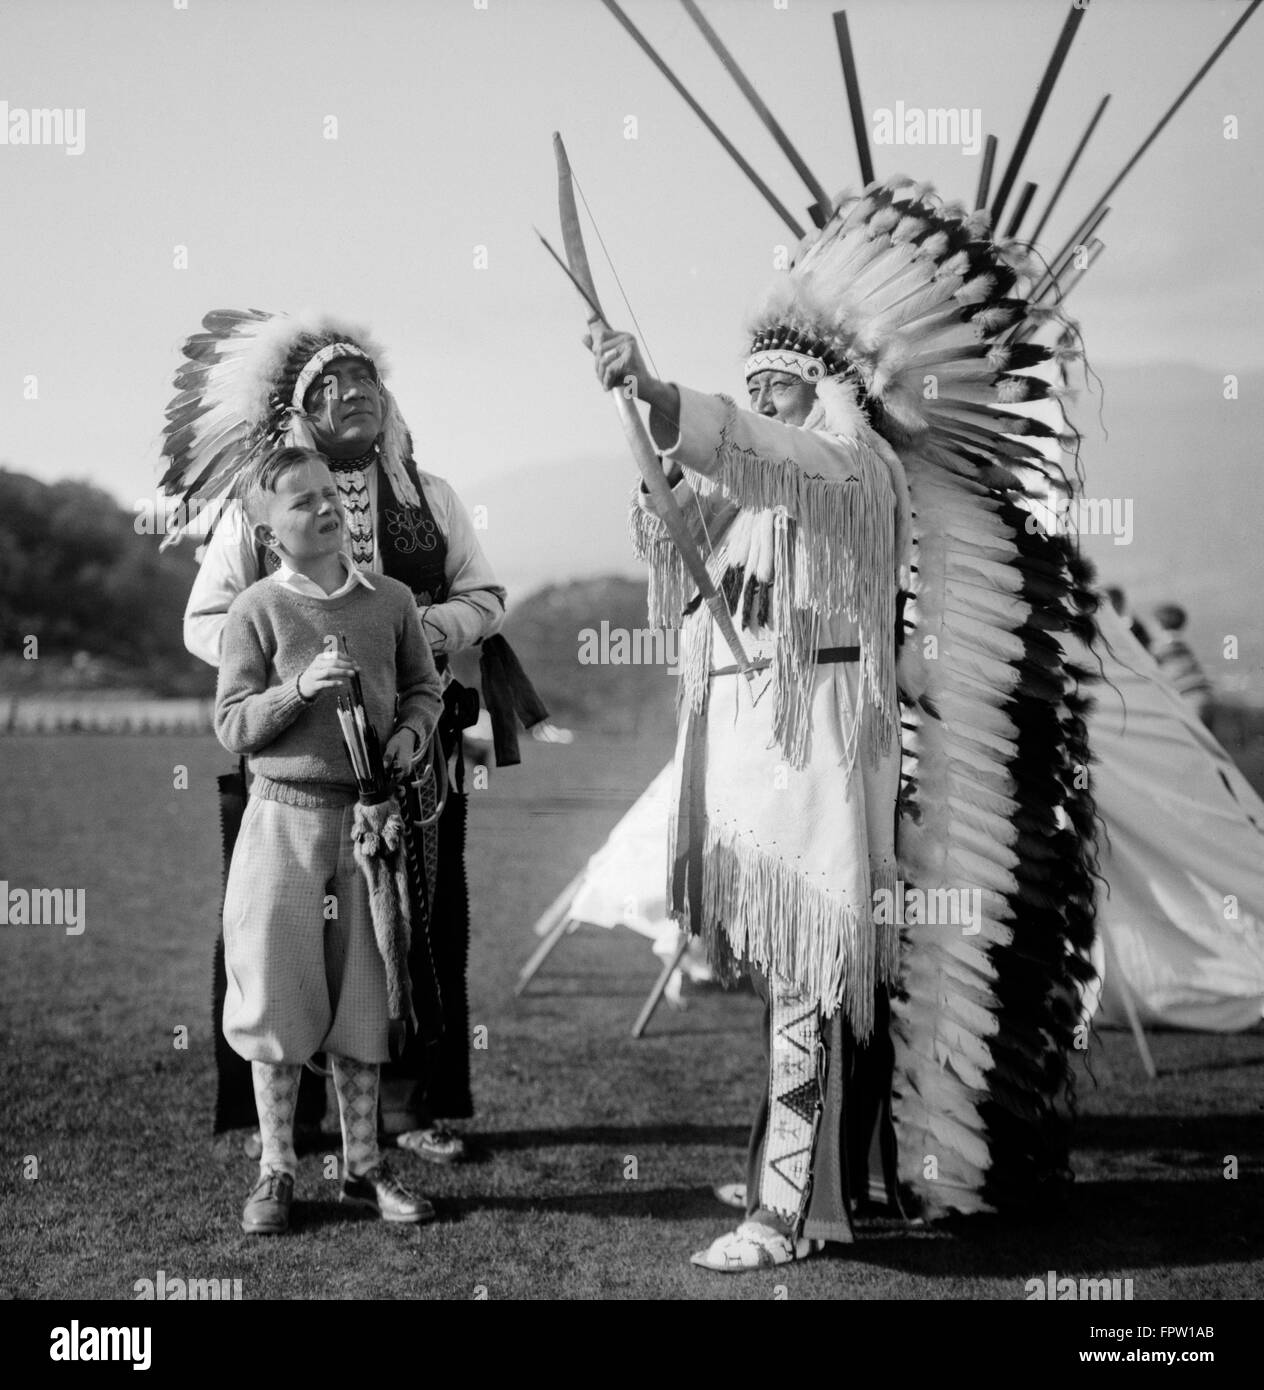 e13a03f2a1 1930s TWO NATIVE AMERICAN INDIAN MEN WEARING TRADITIONAL CLOTHING FEATHER  HEADDRESSES CHIEF SHOWING BOY HOW TO